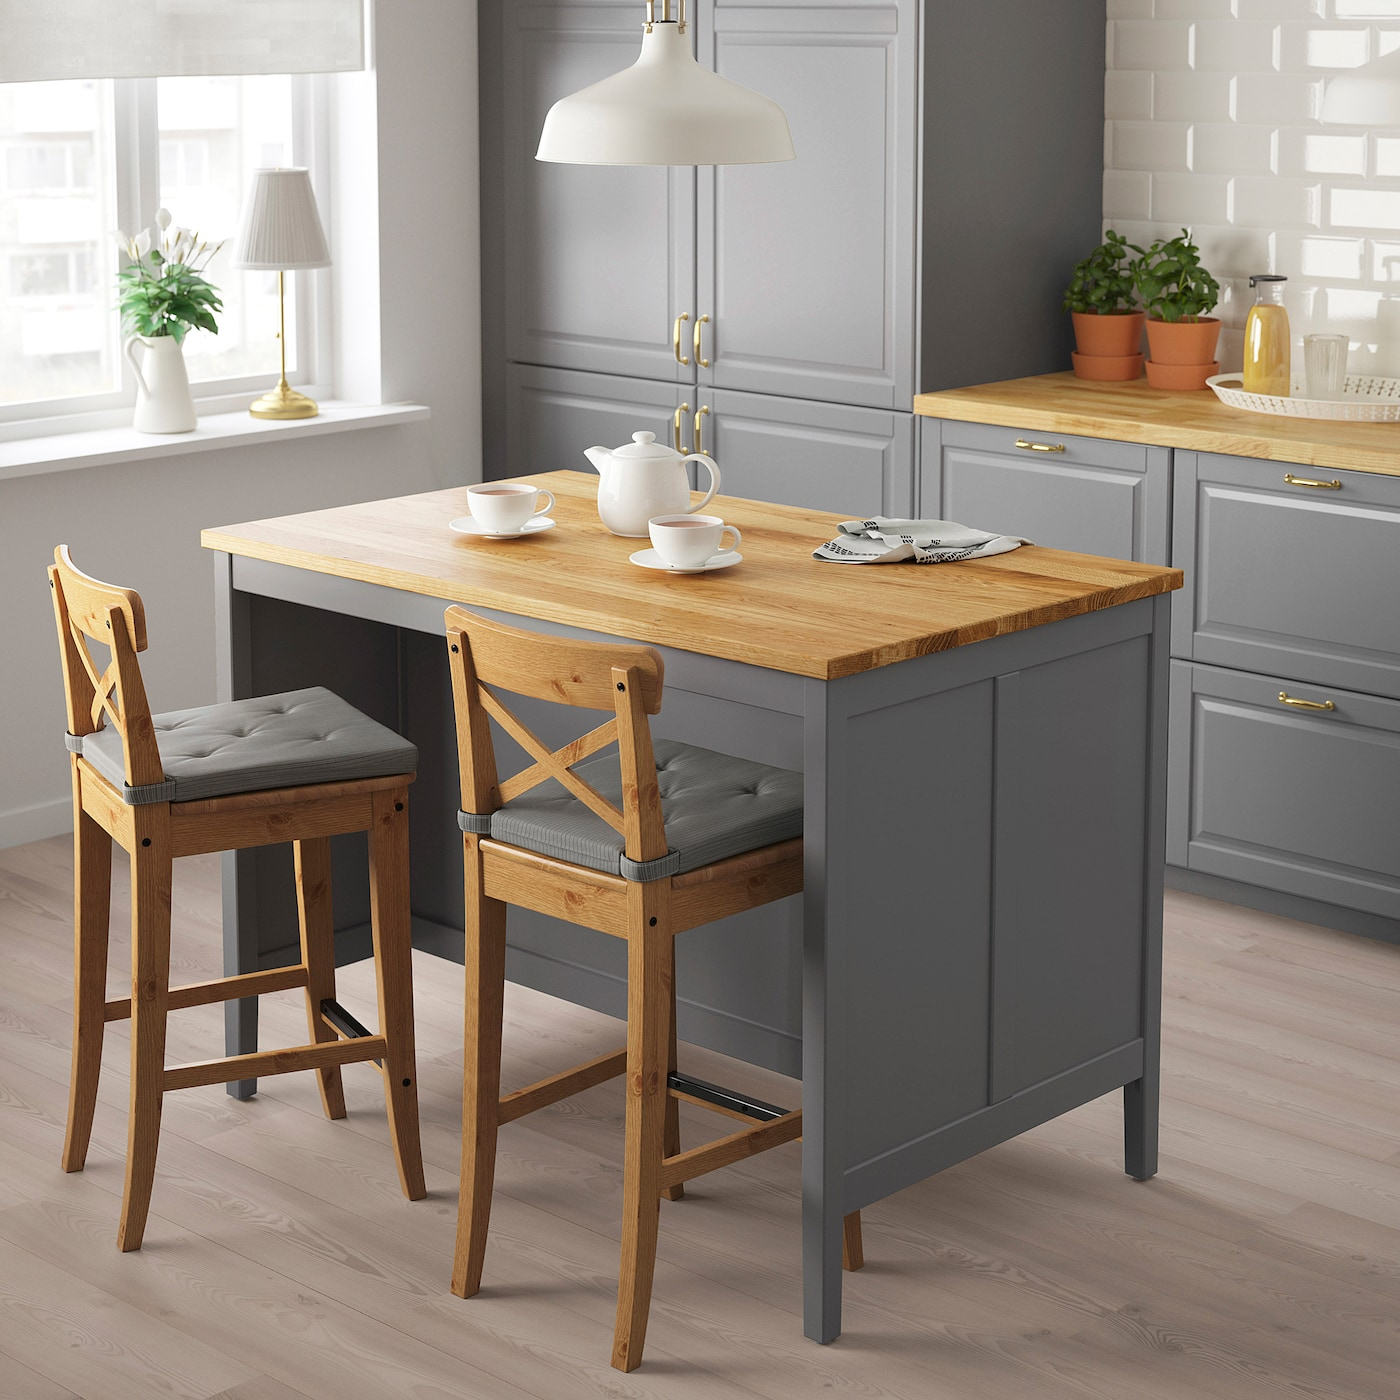 TORNVIKEN Kitchen island - grey/oak 8x8 cm